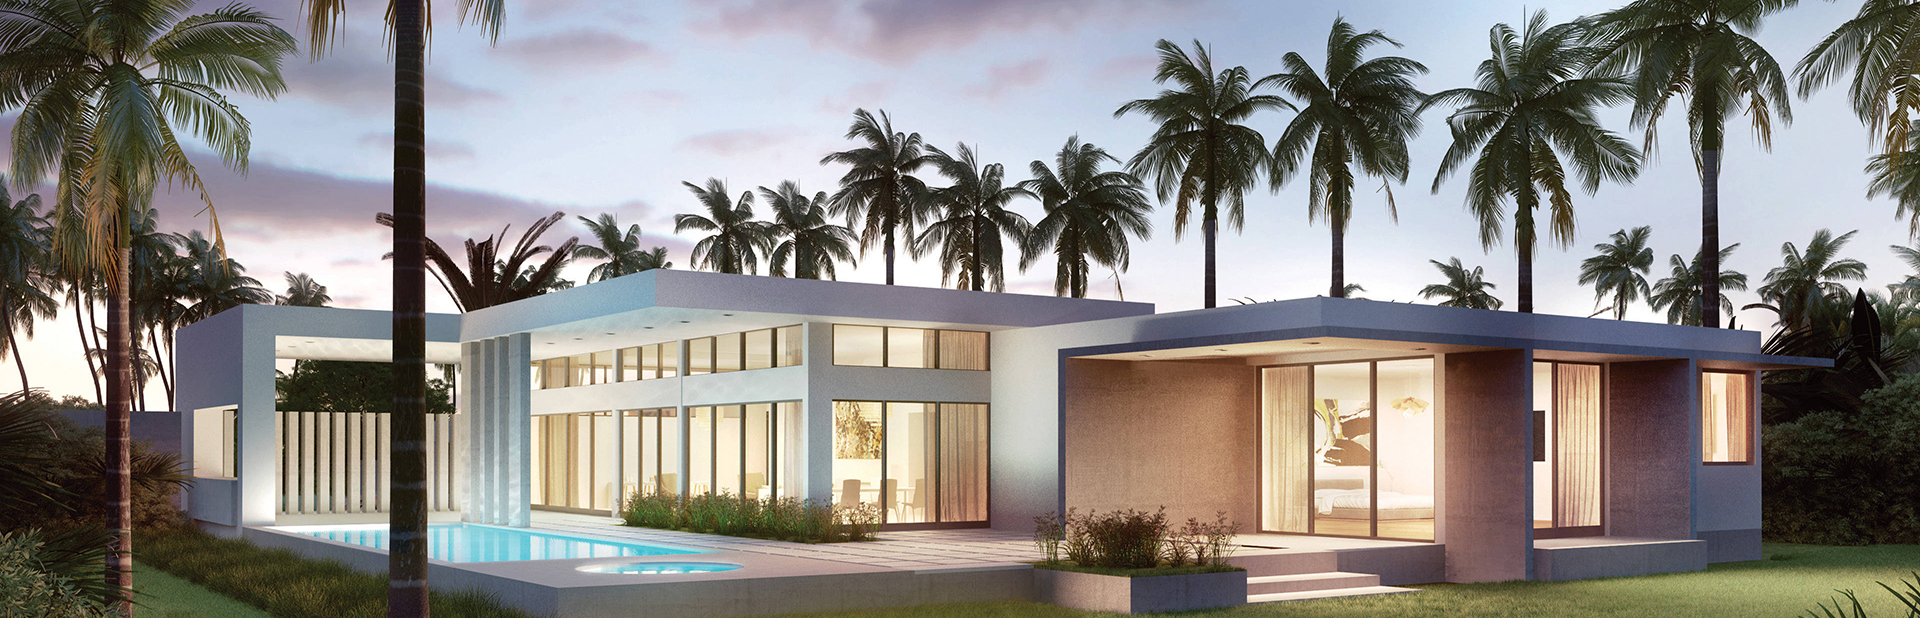 New construction homes in South Florida